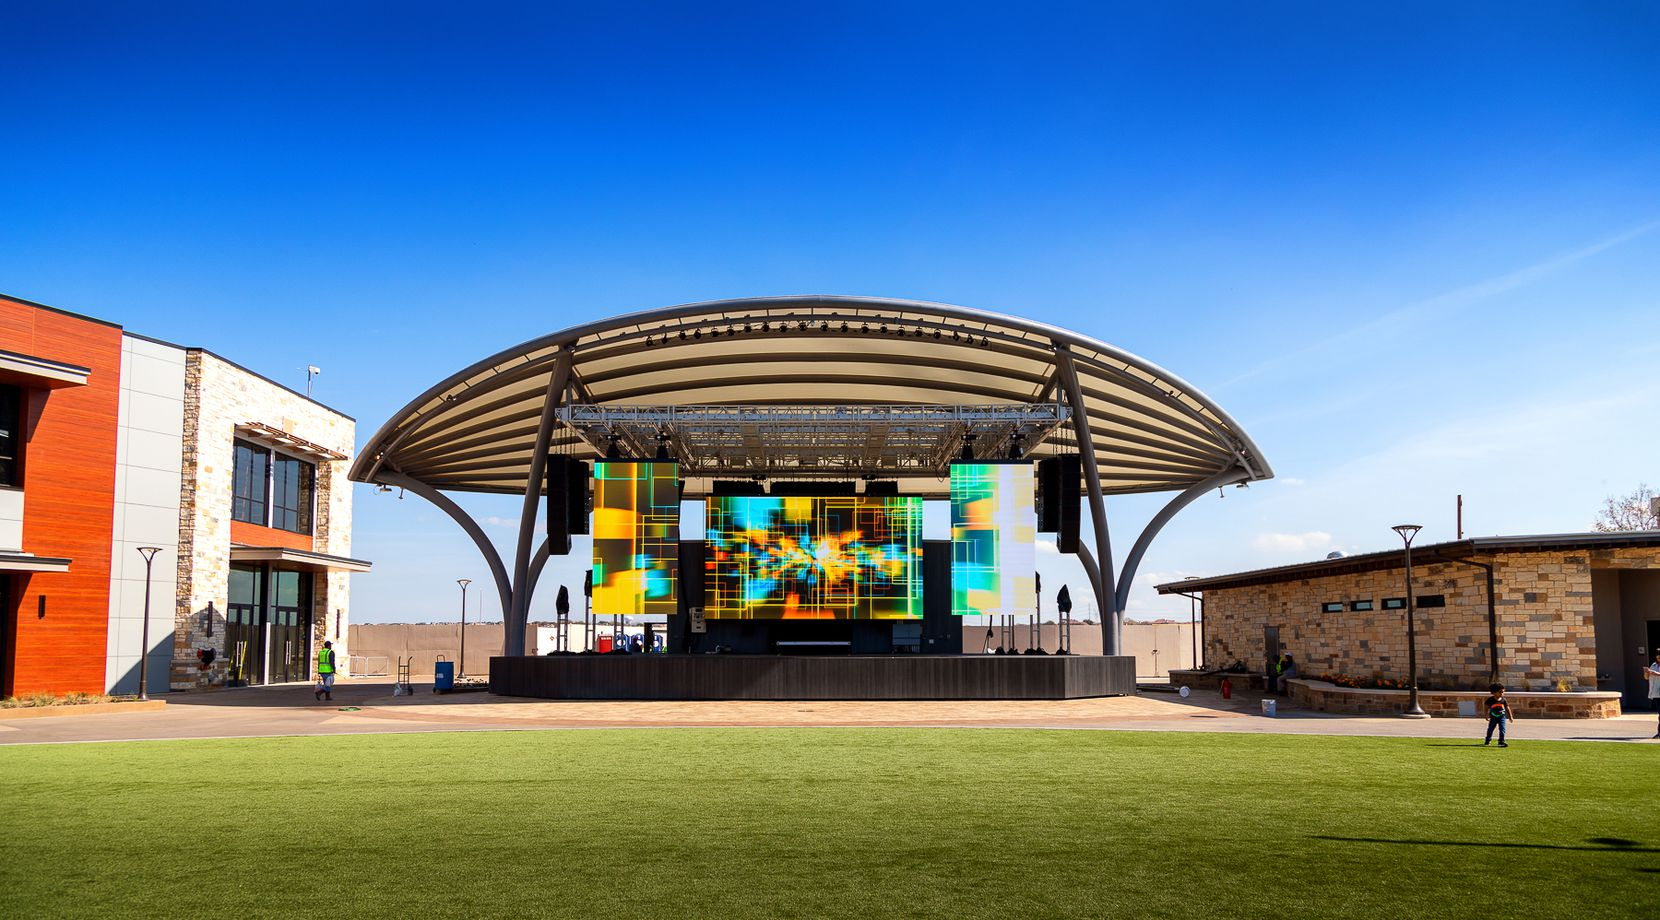 This performance stage is part of Grandscape, a $1.5 billion development along State Highway 121 in The Colony.